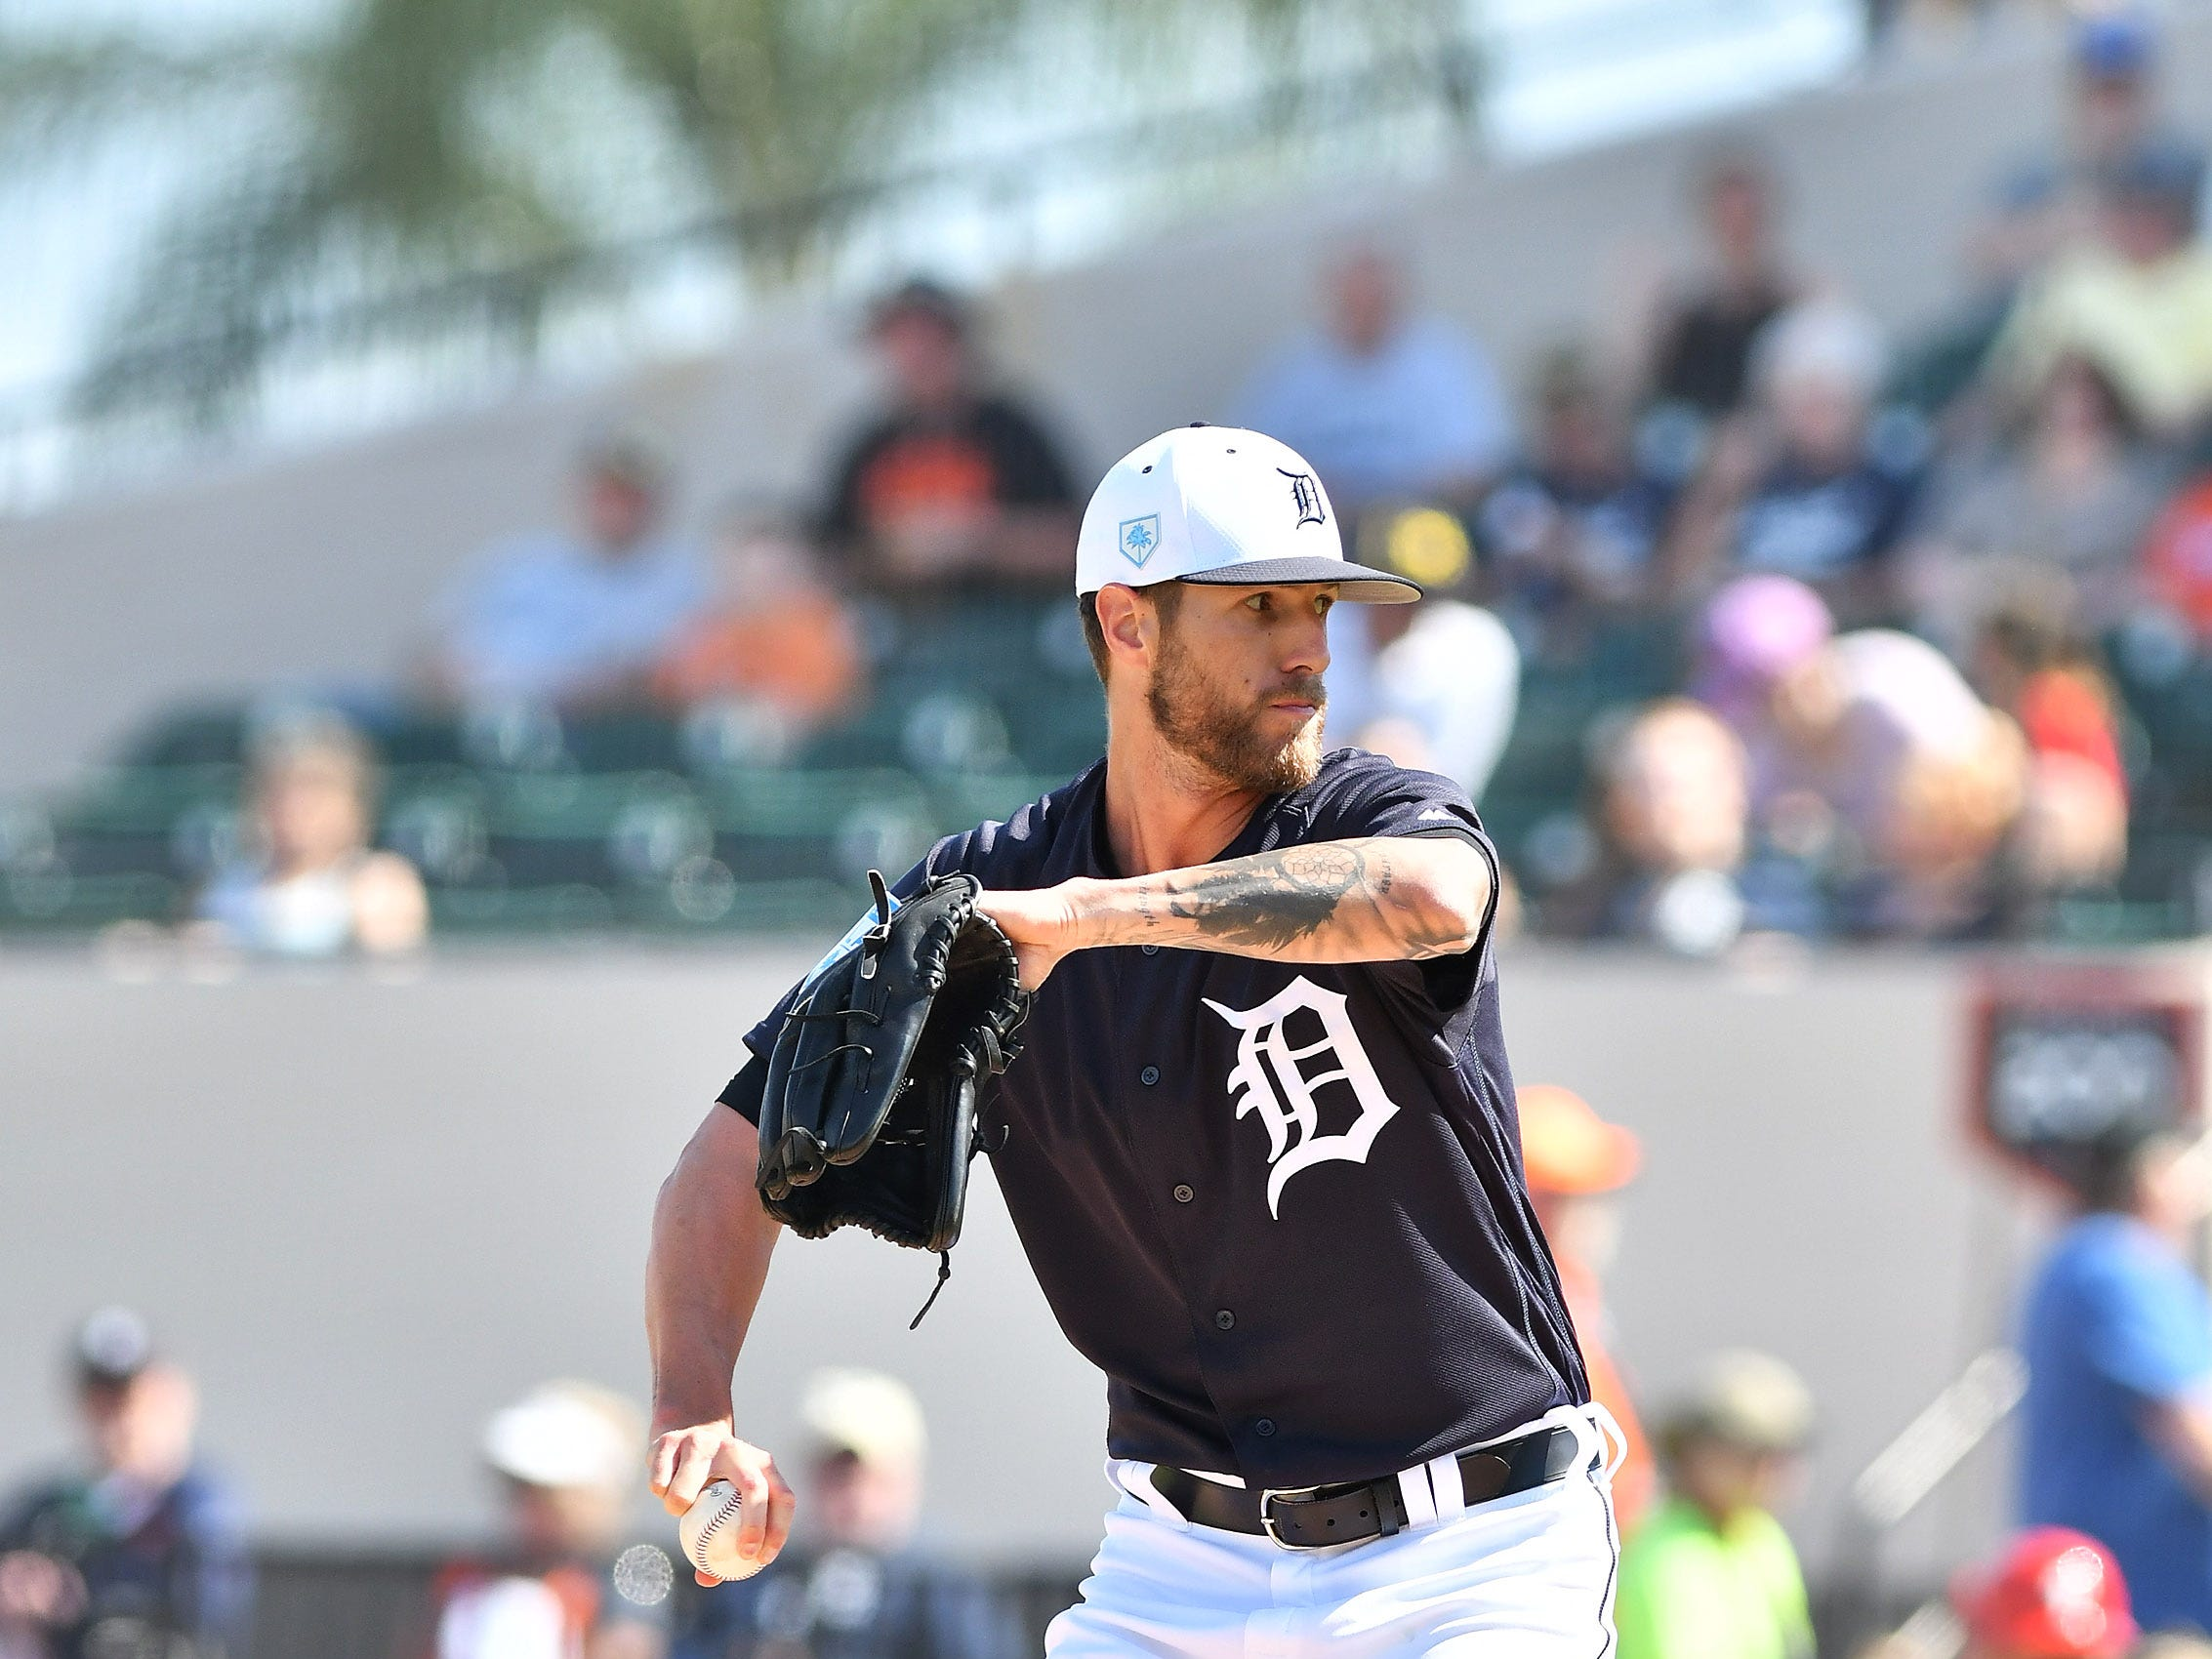 Tigers pitcher Shane Greene works in the third inning.